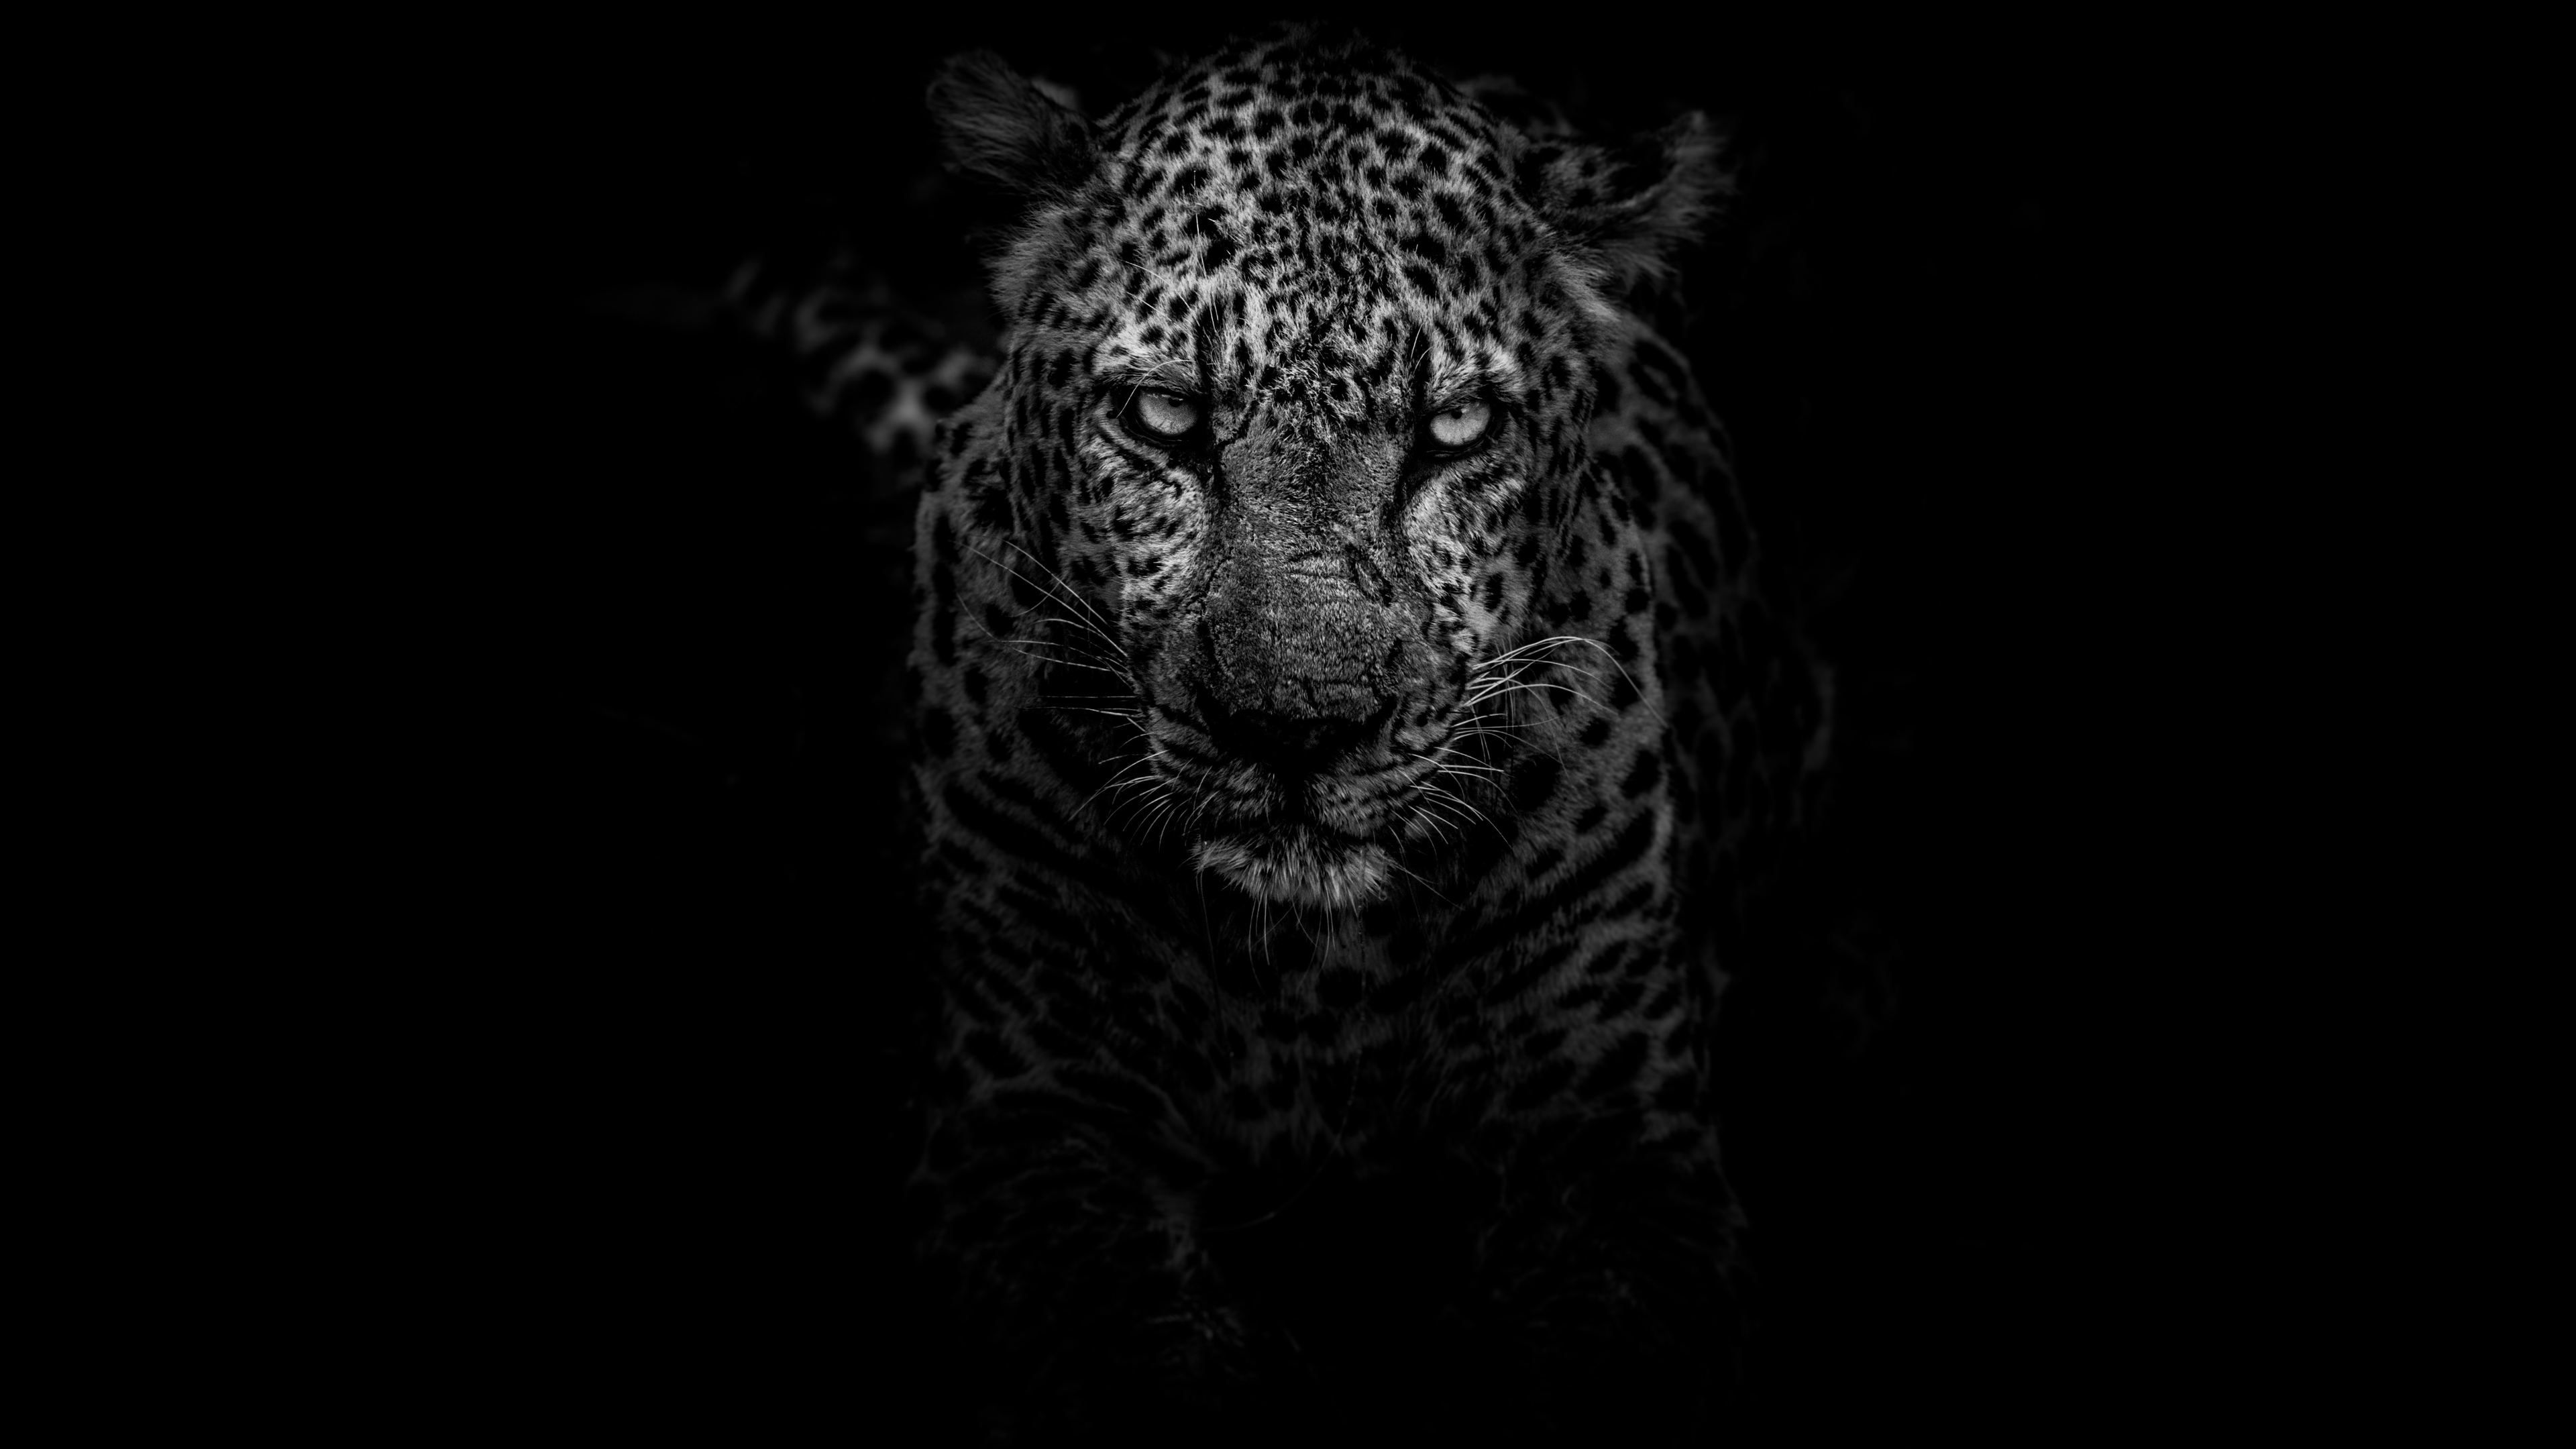 Leopard Dark Monochrome 4k Monochrome Wallpapers Leopard Wallpapers Hd Wallpapers Dark Wallpapers Black And Leopard Pictures Animal Wallpaper Jaguar Animal